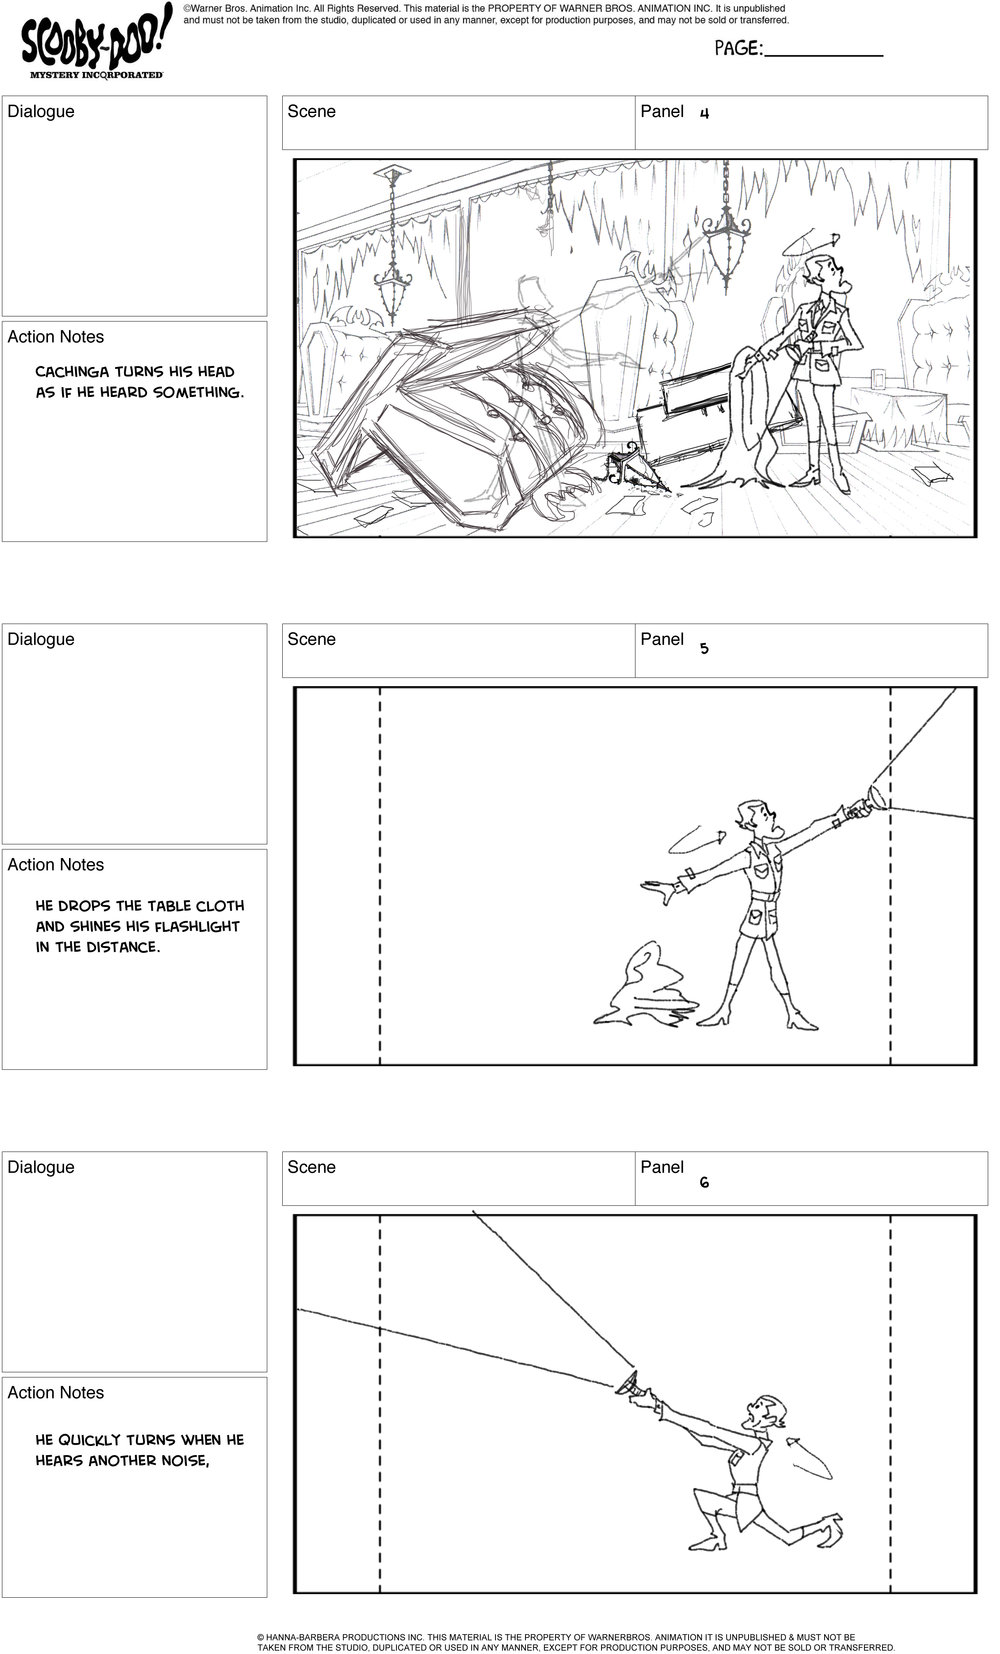 Scooby Storyboard page 15.jpg